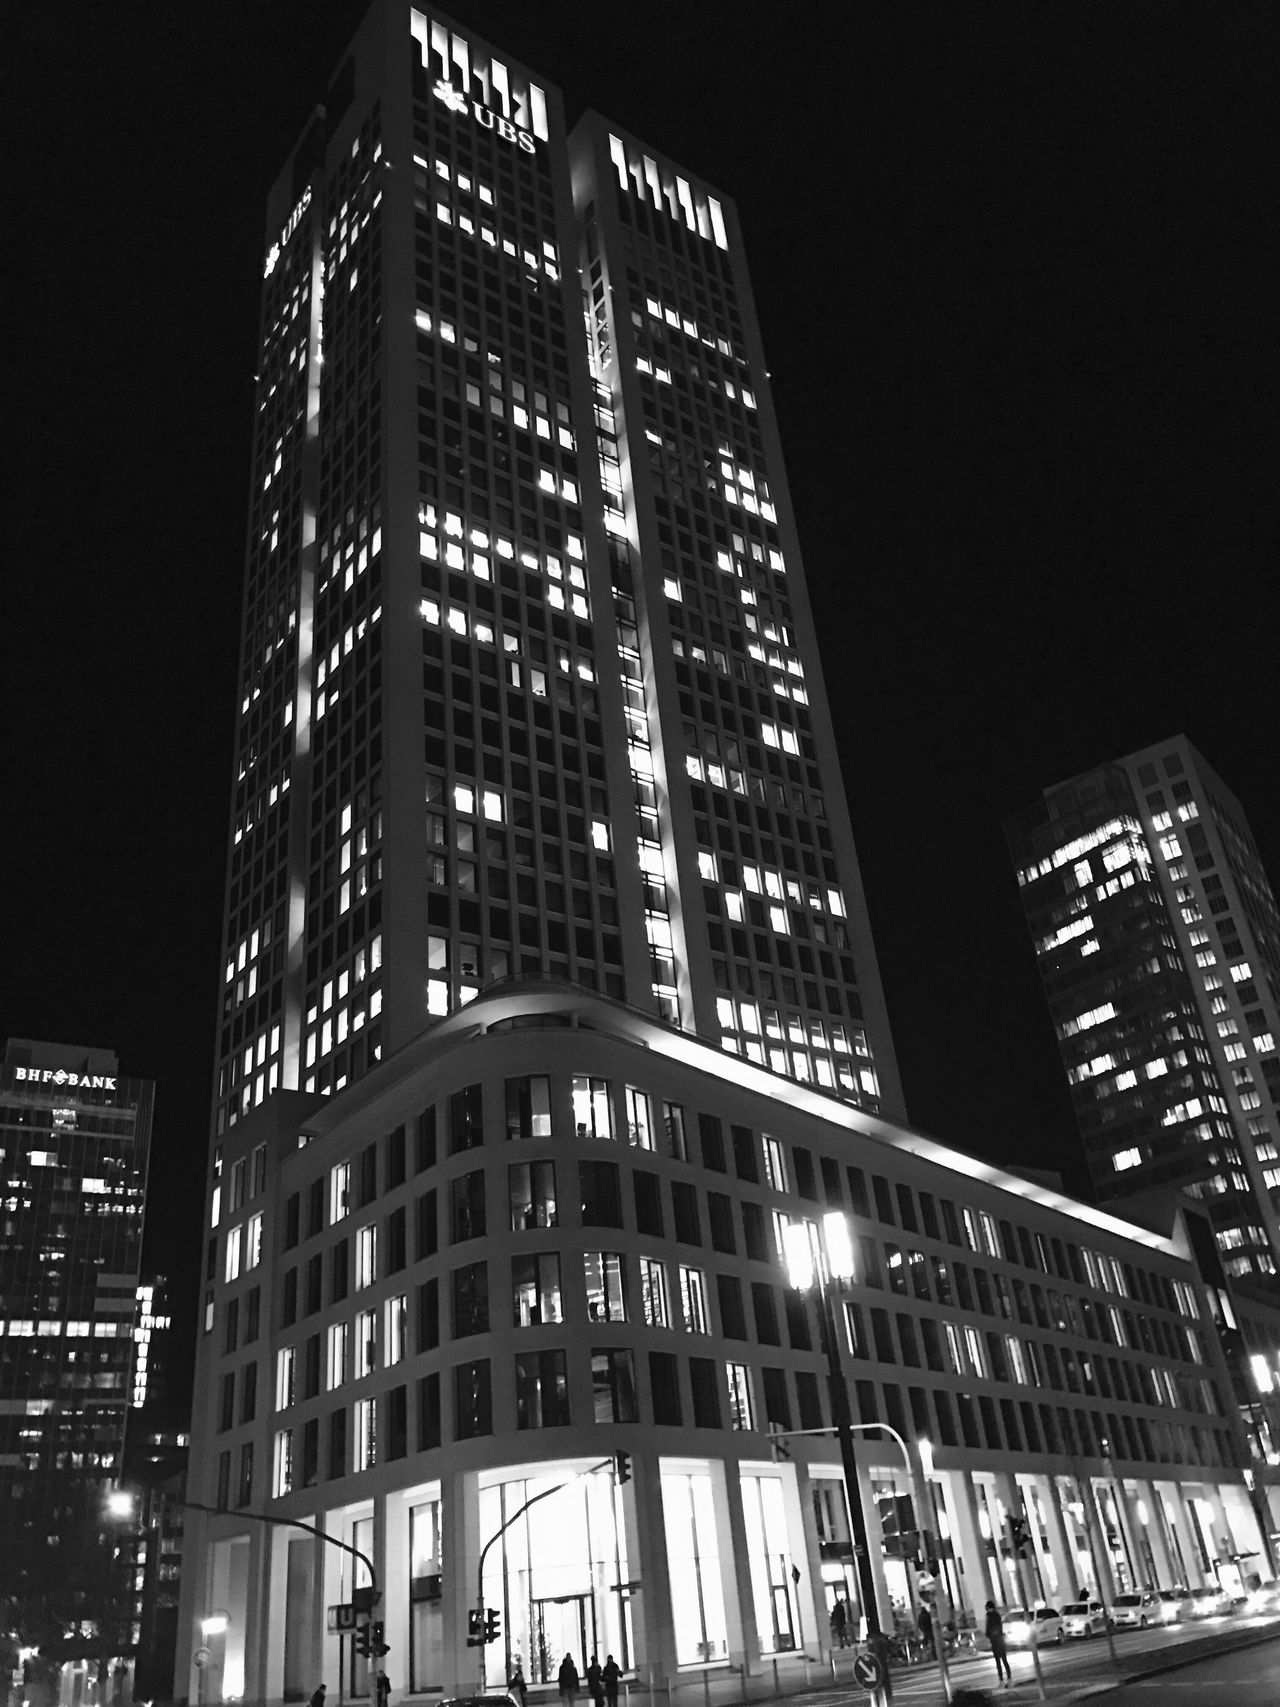 Frankfurt Hochhaus Architecture City Skyscraper Illuminated Built Structure Building Exterior Night Low Angle View Modern Travel Destinations Outdoors No People City Life Tall Frankfurt Frankfurt Am Main Skyline Frankfurt Skyline